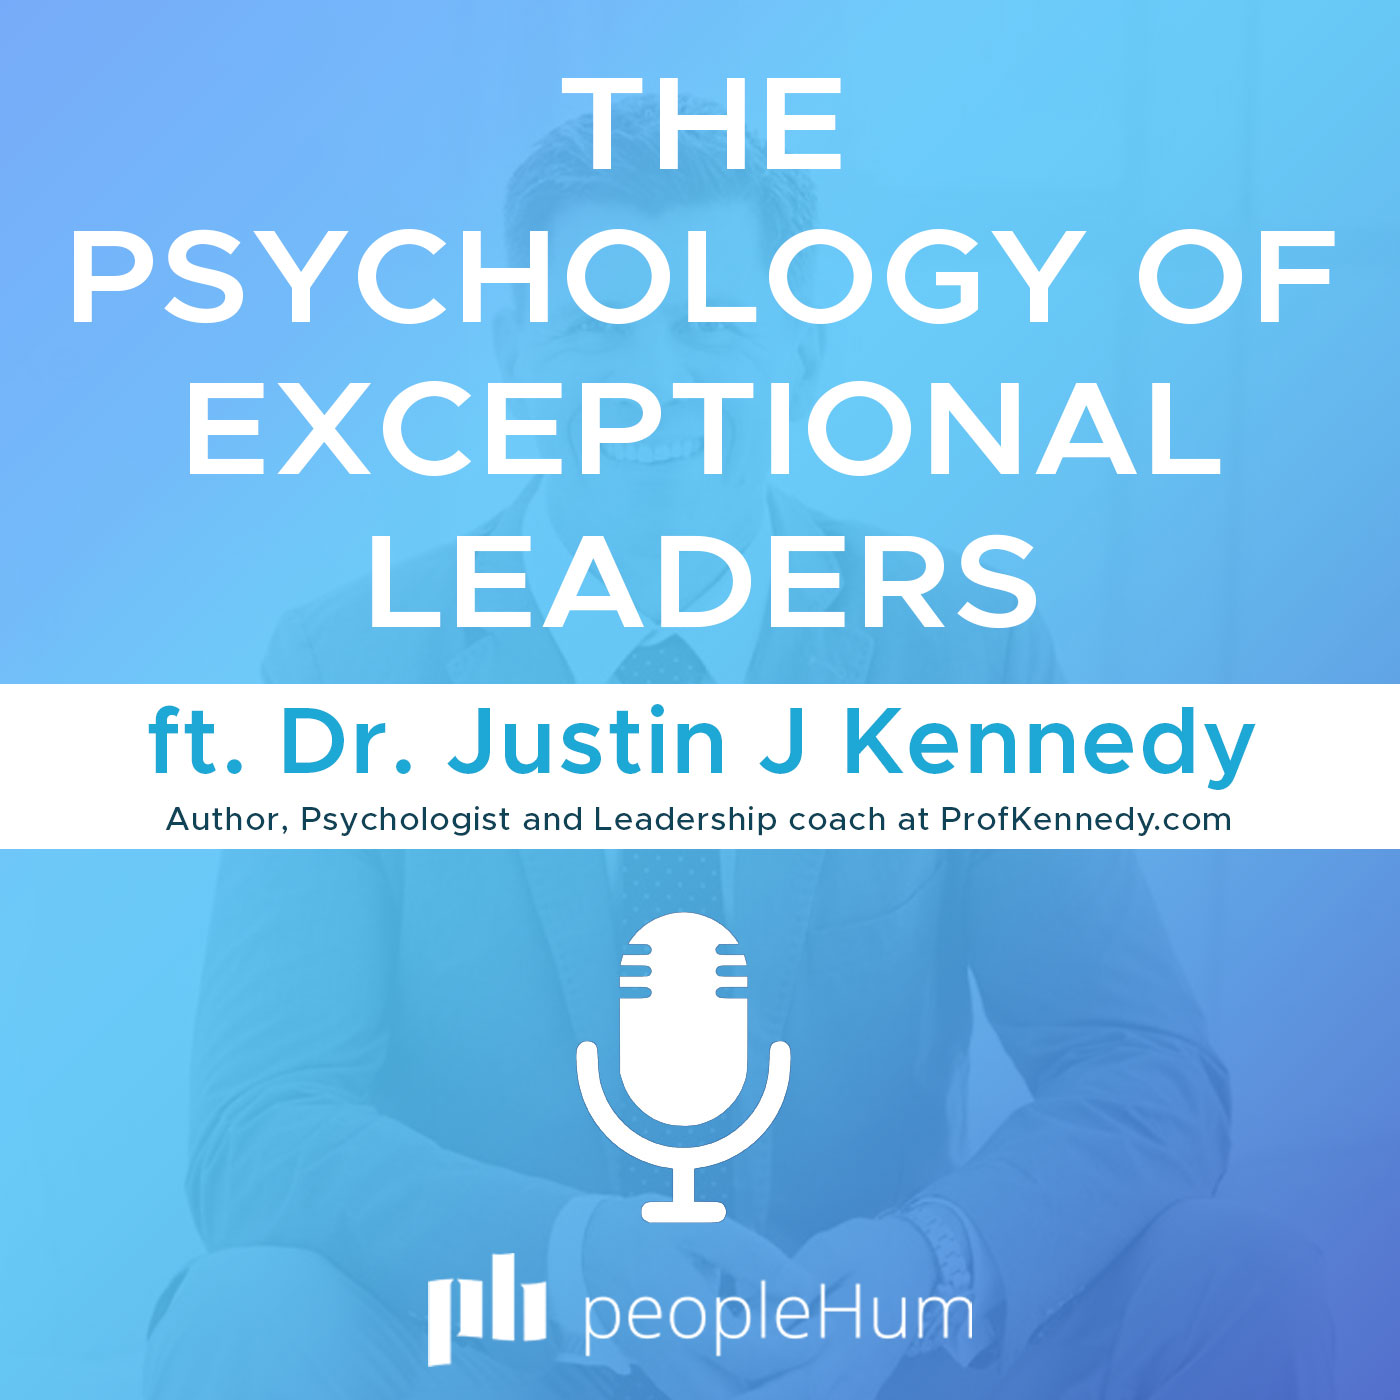 The Psychology of exceptional leaders ft. Dr. Justin J Kennedy